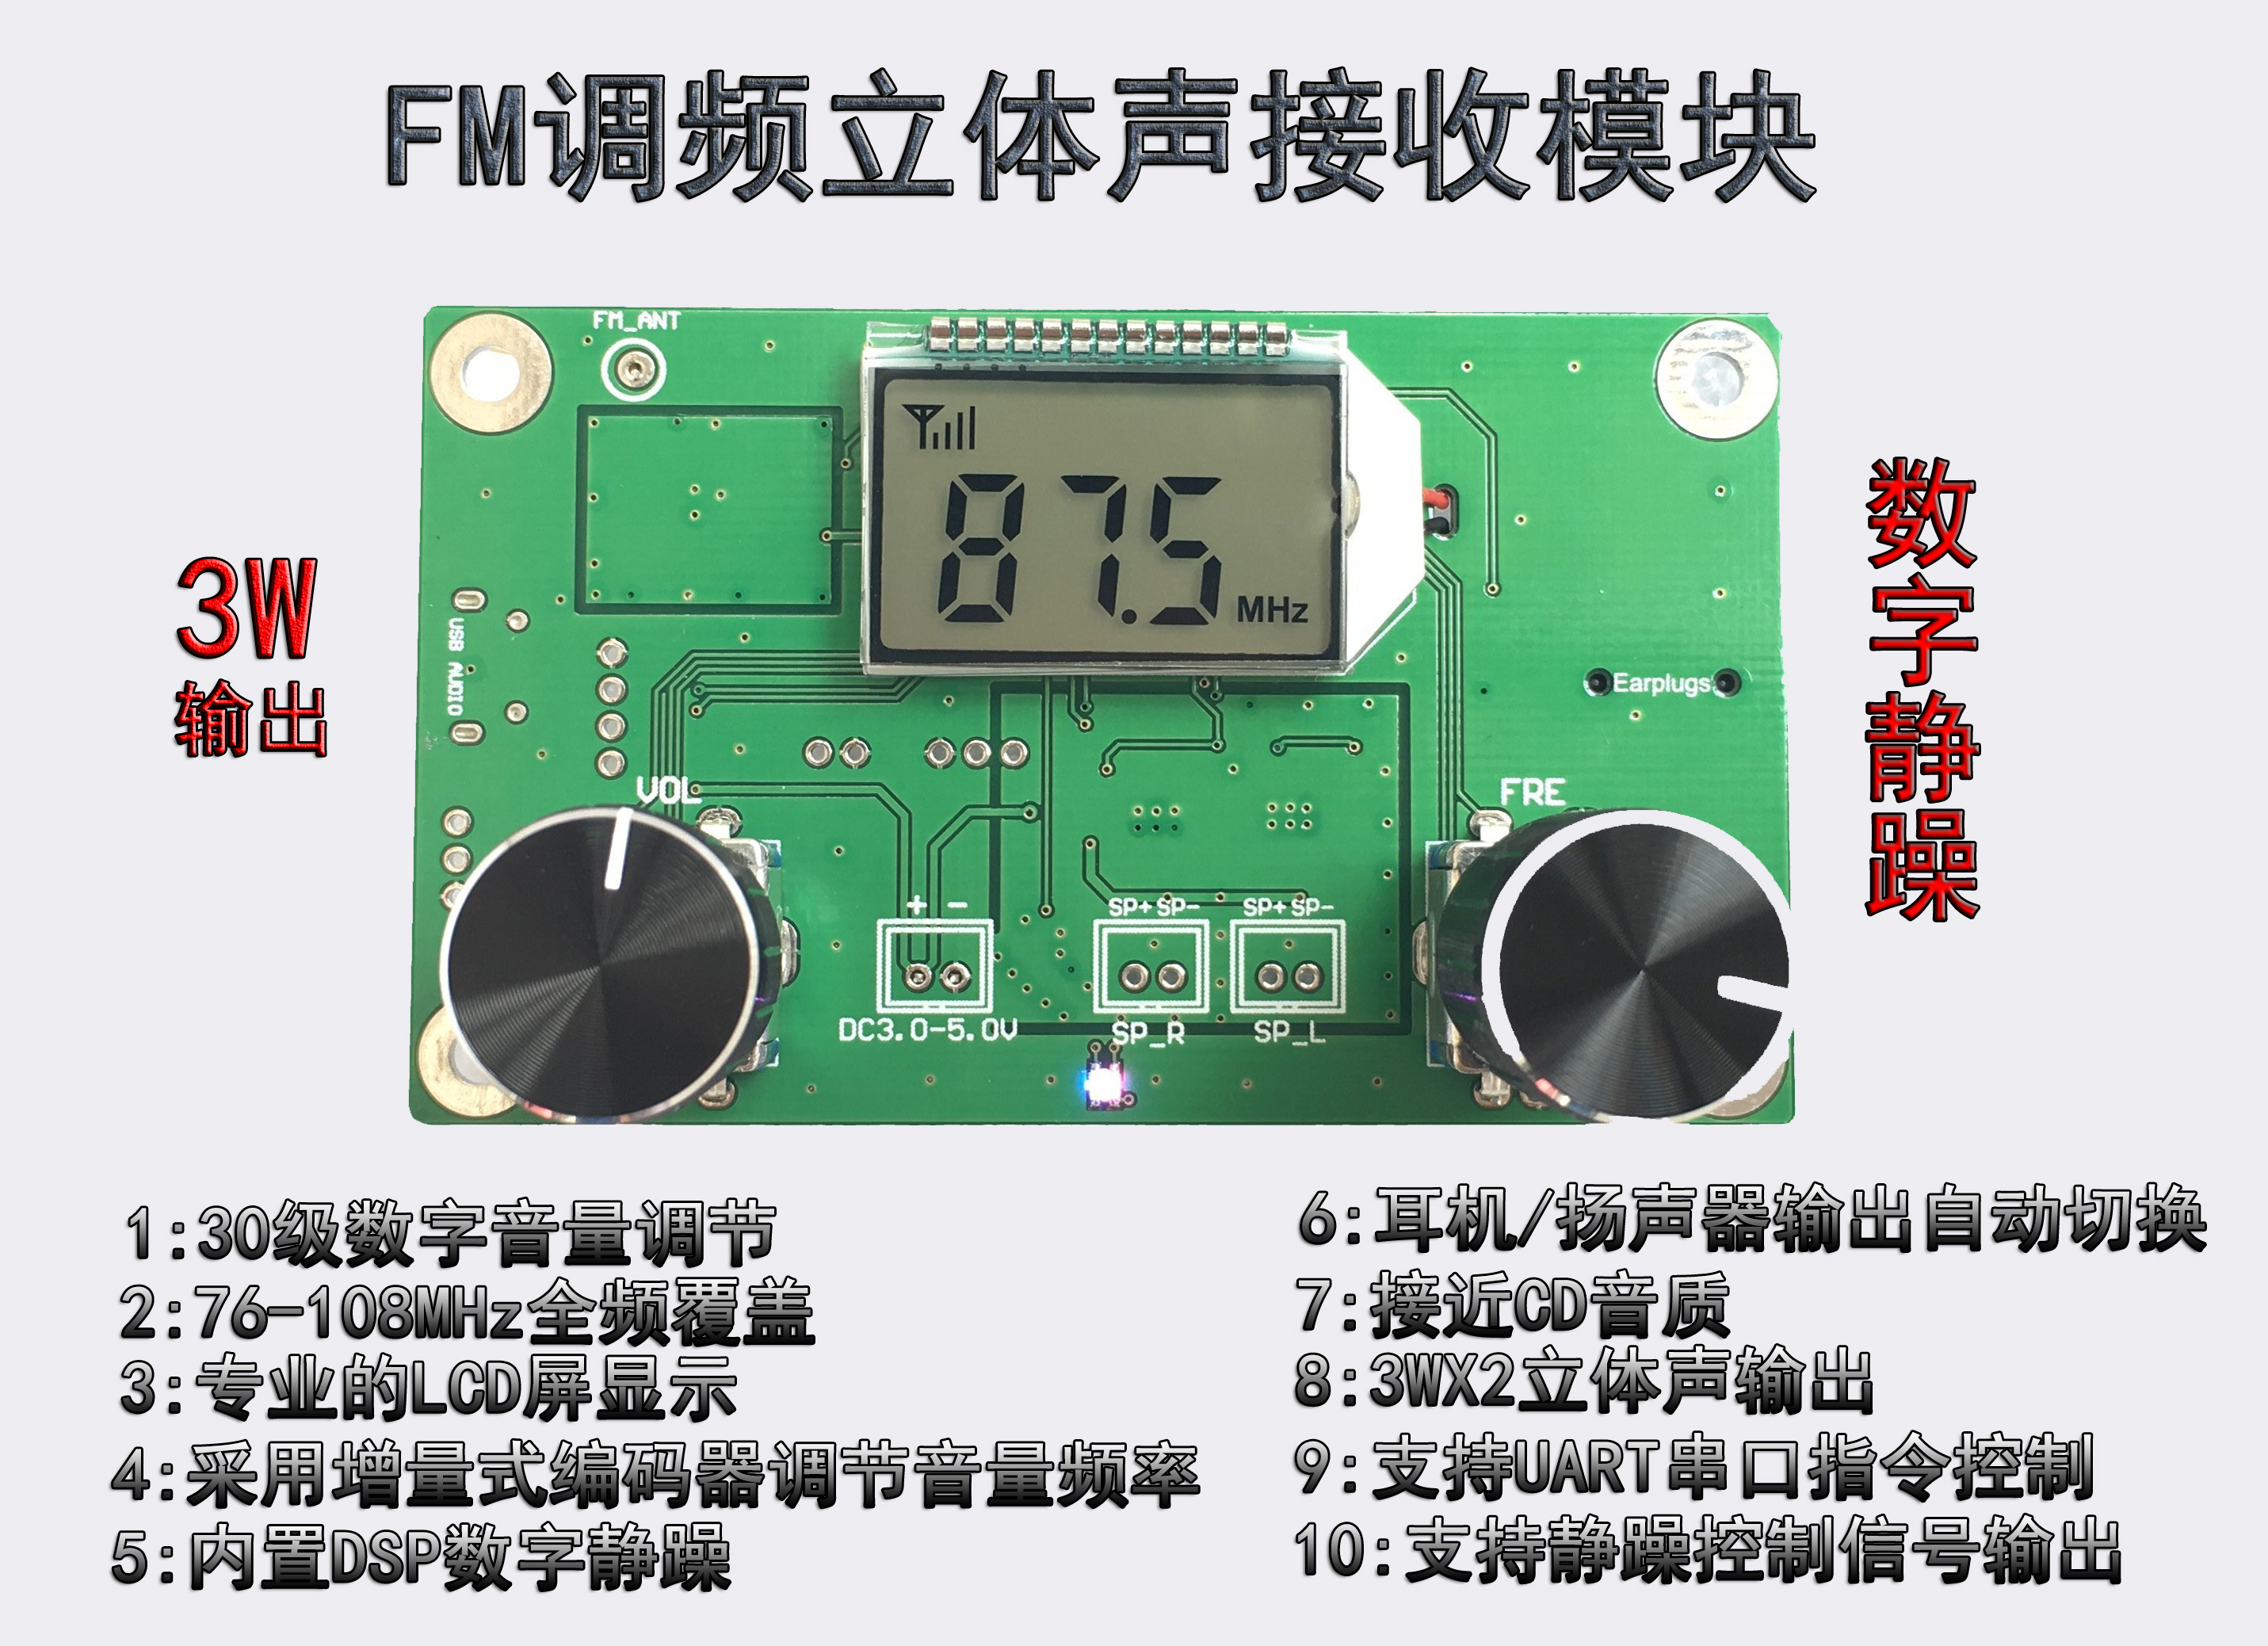 FM FM stereo digital radio module /FM multi-function FM radio module 2pcs tea5767 fm radio module full version